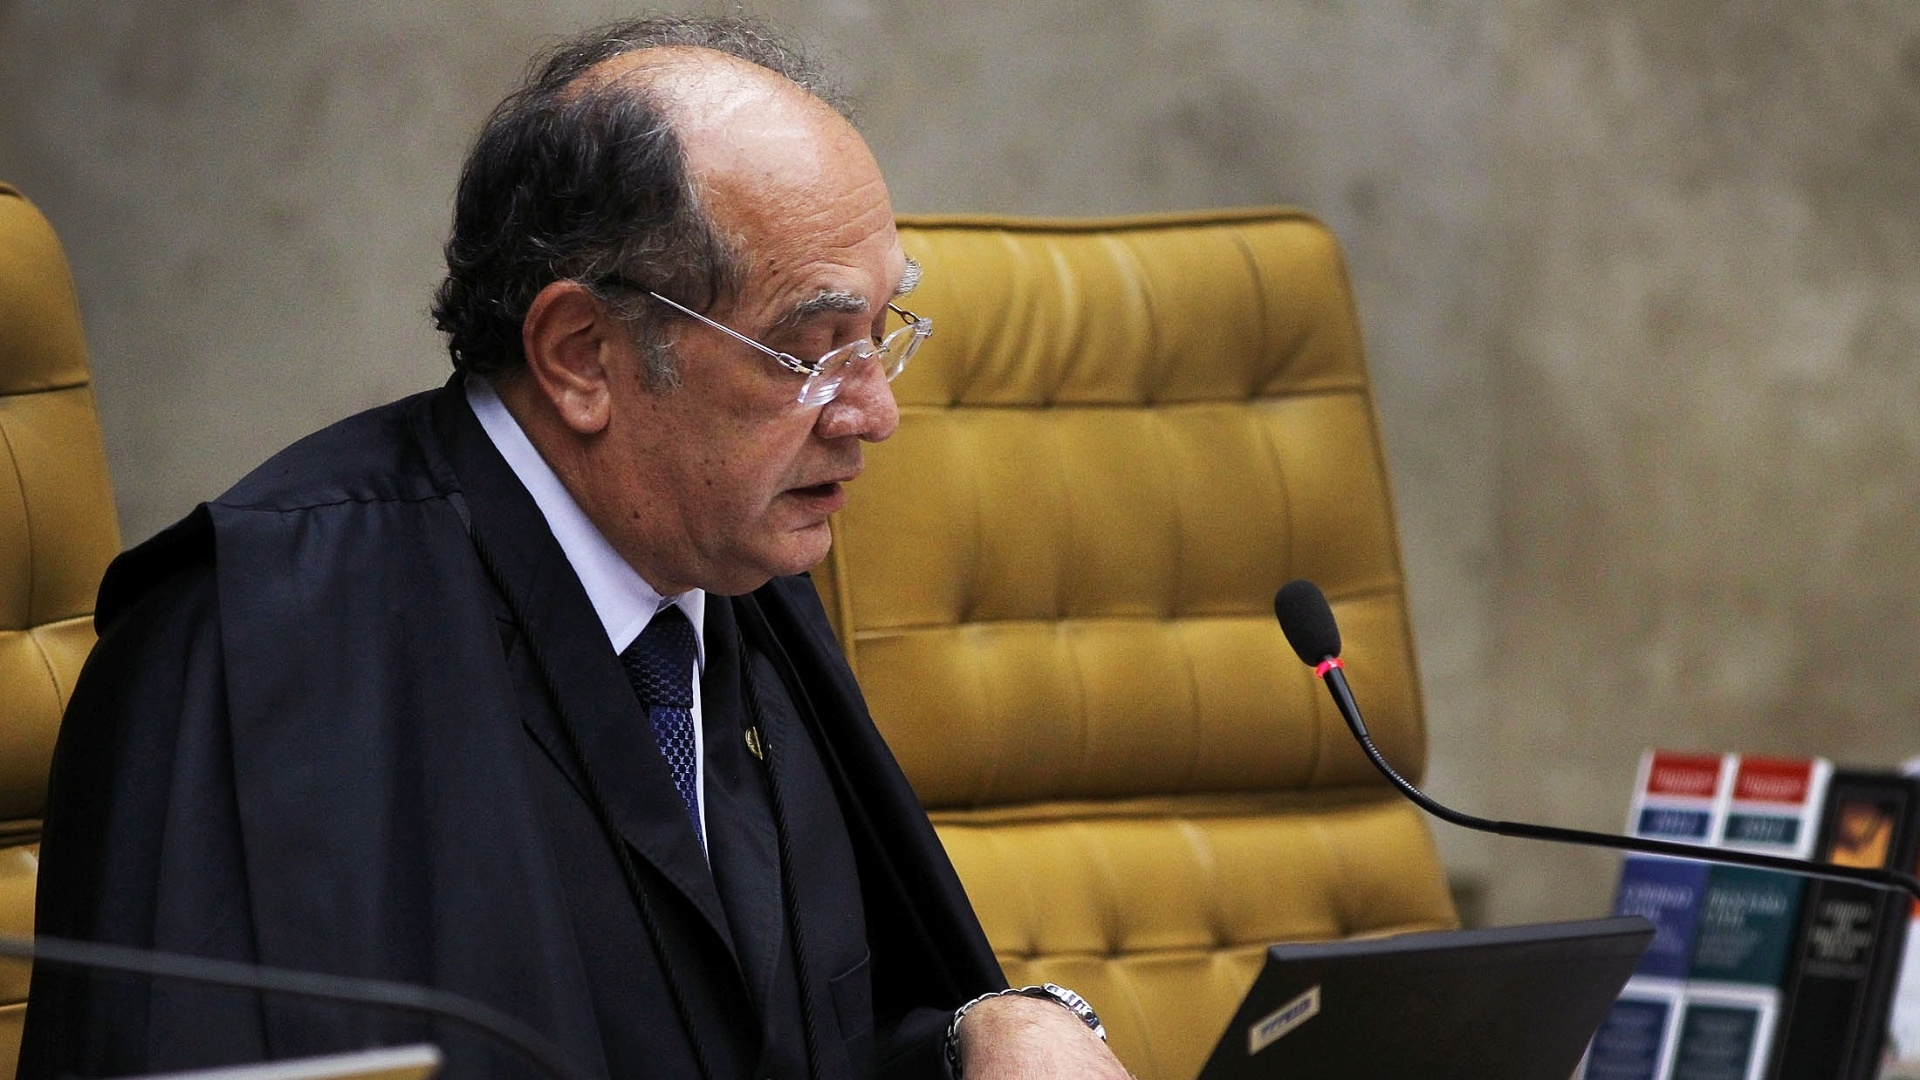 9.out.2012 - Ministro Gilmar Mendes acompanha votos de ministros Dias Toffoli e Marco Aurlio Mello no captulo referente  participao no esquema de corrupo ativa no processo do mensalo